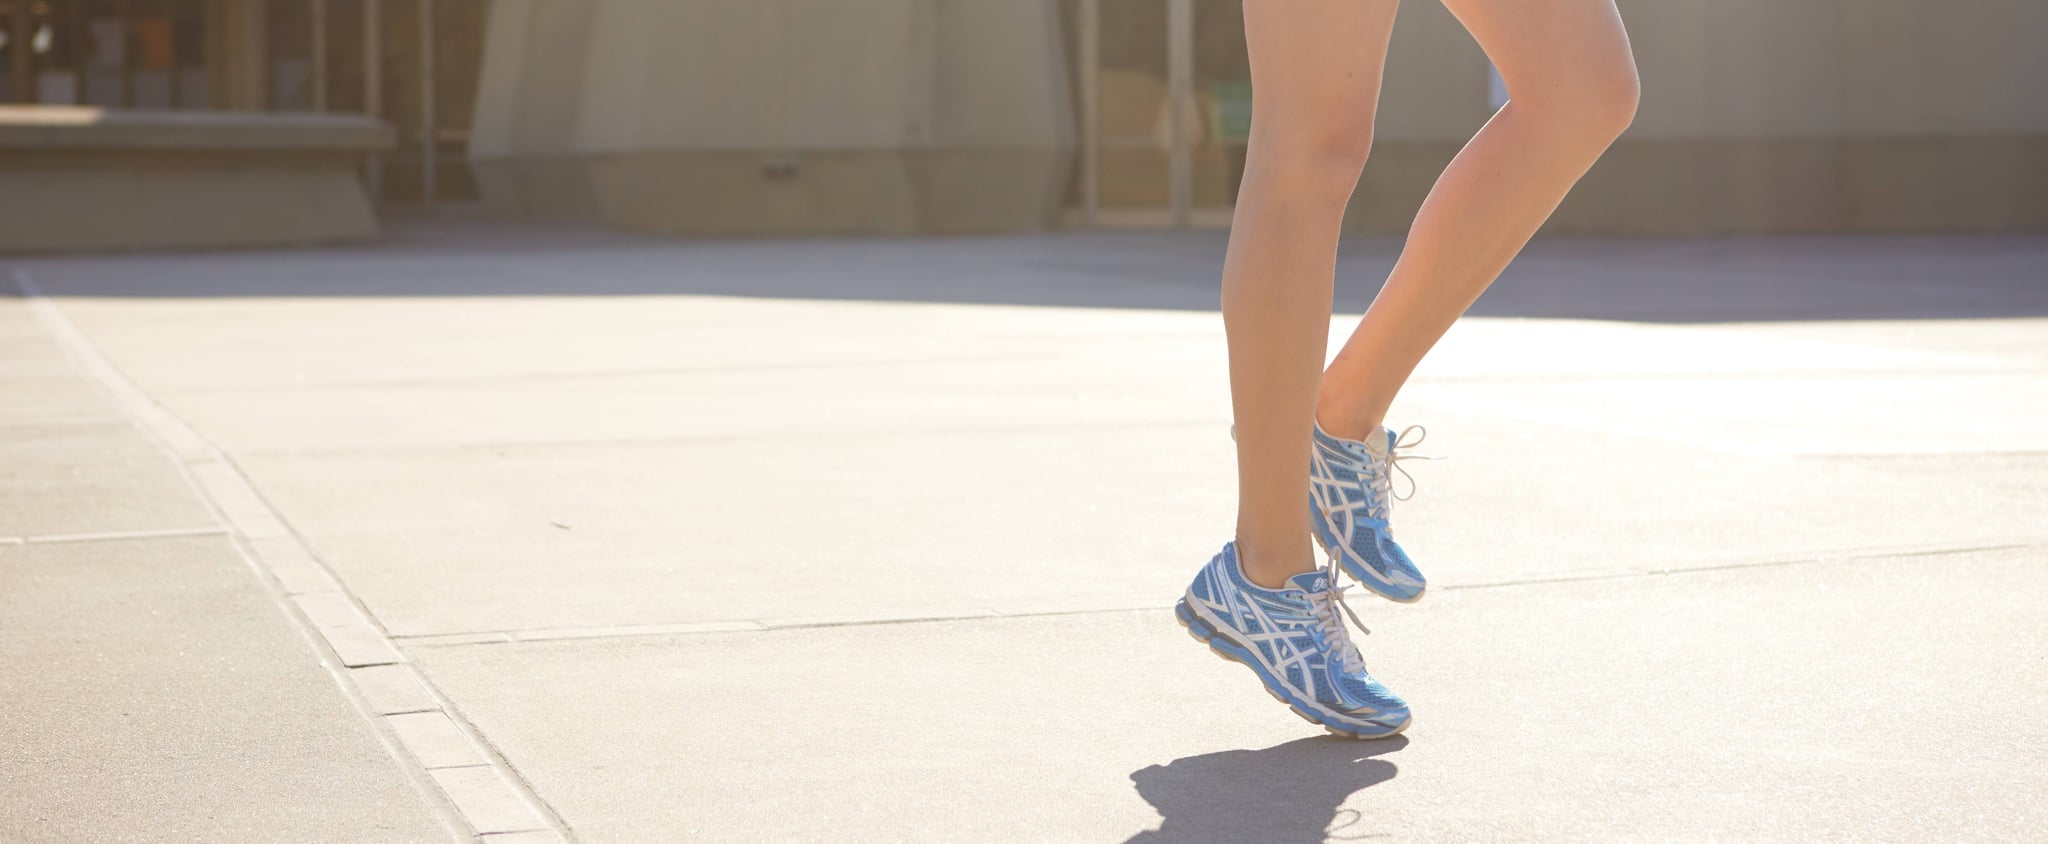 Cardio or Strength Training When You're Short on Time? Jessica Biel's Trainer Answers